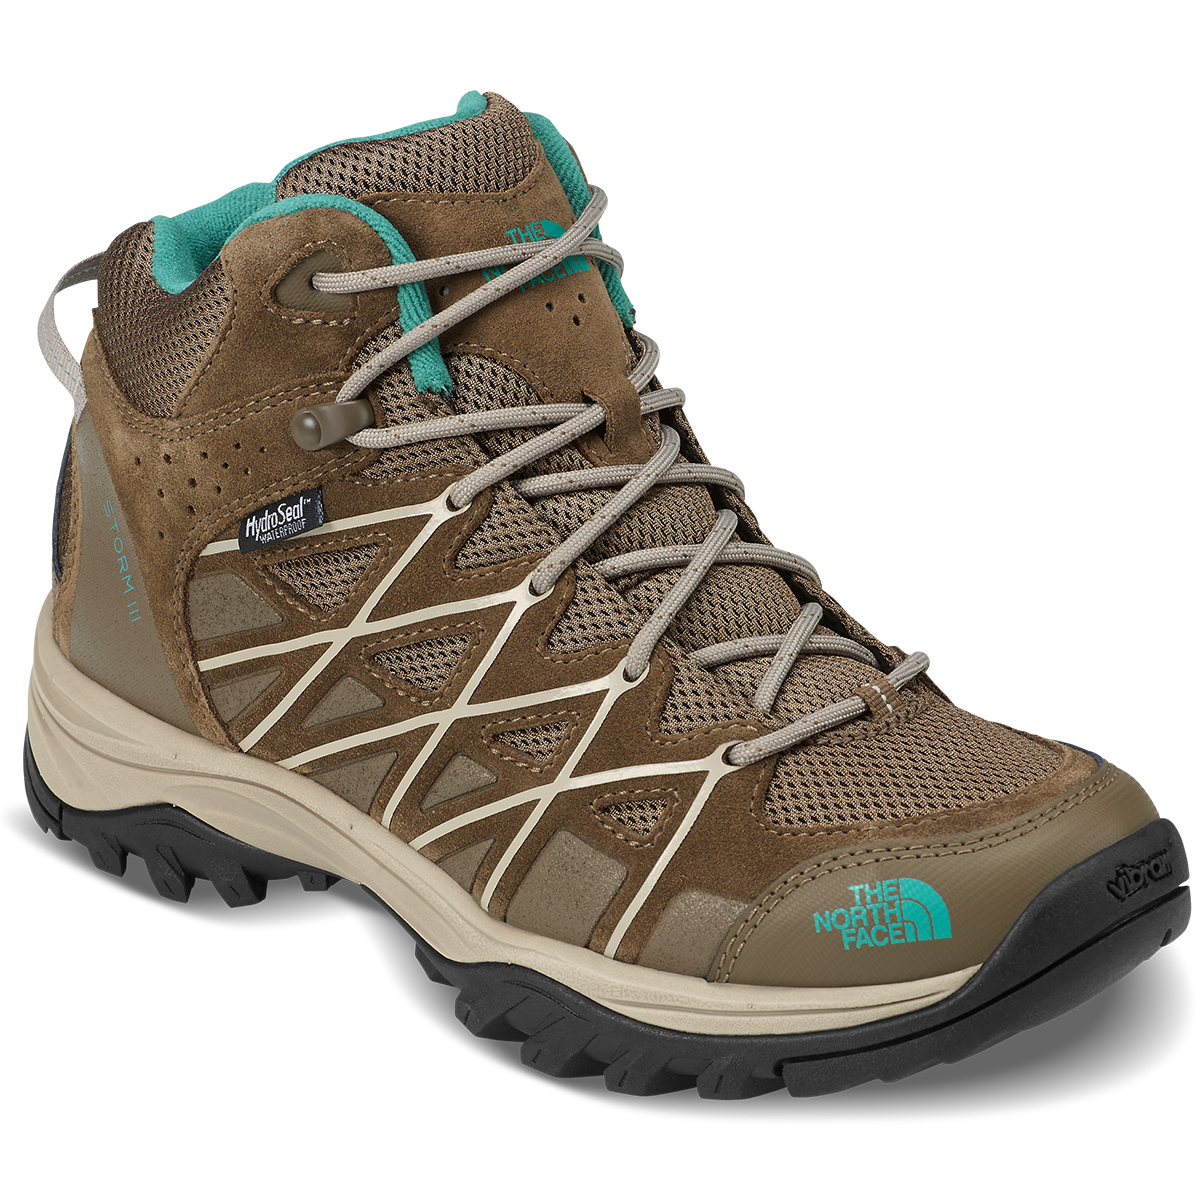 THE NORTH FACE Women's Storm III Mid